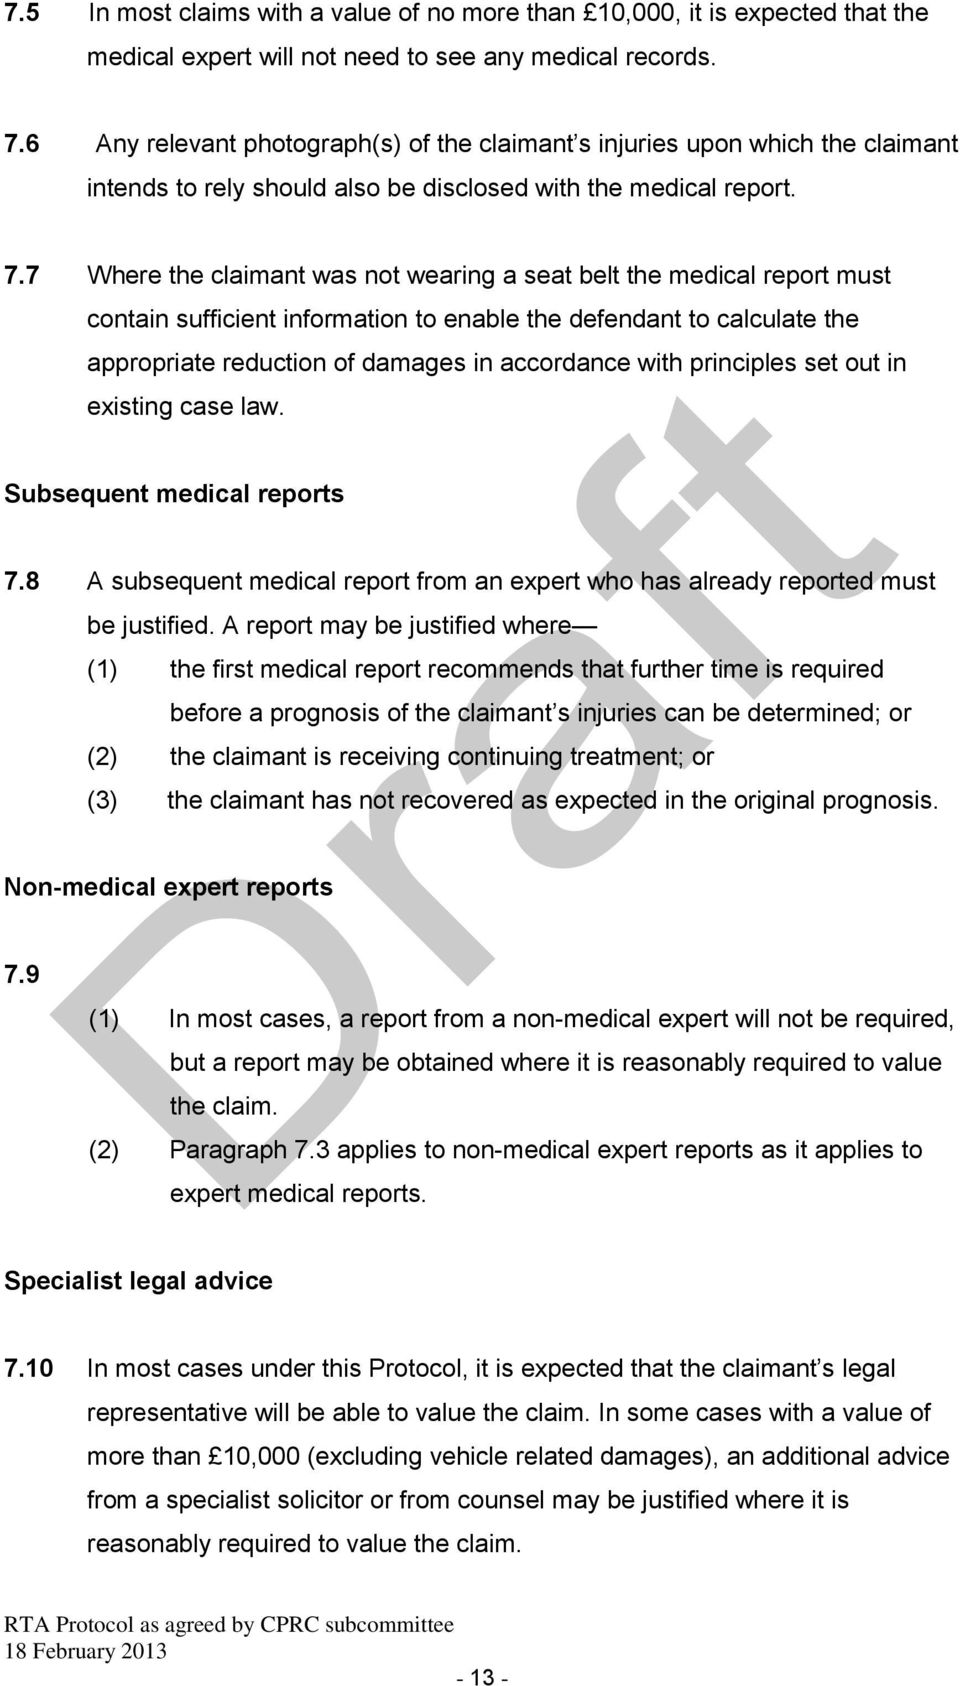 7 Where the claimant was not wearing a seat belt the medical report must contain sufficient information to enable the defendant to calculate the appropriate reduction of damages in accordance with